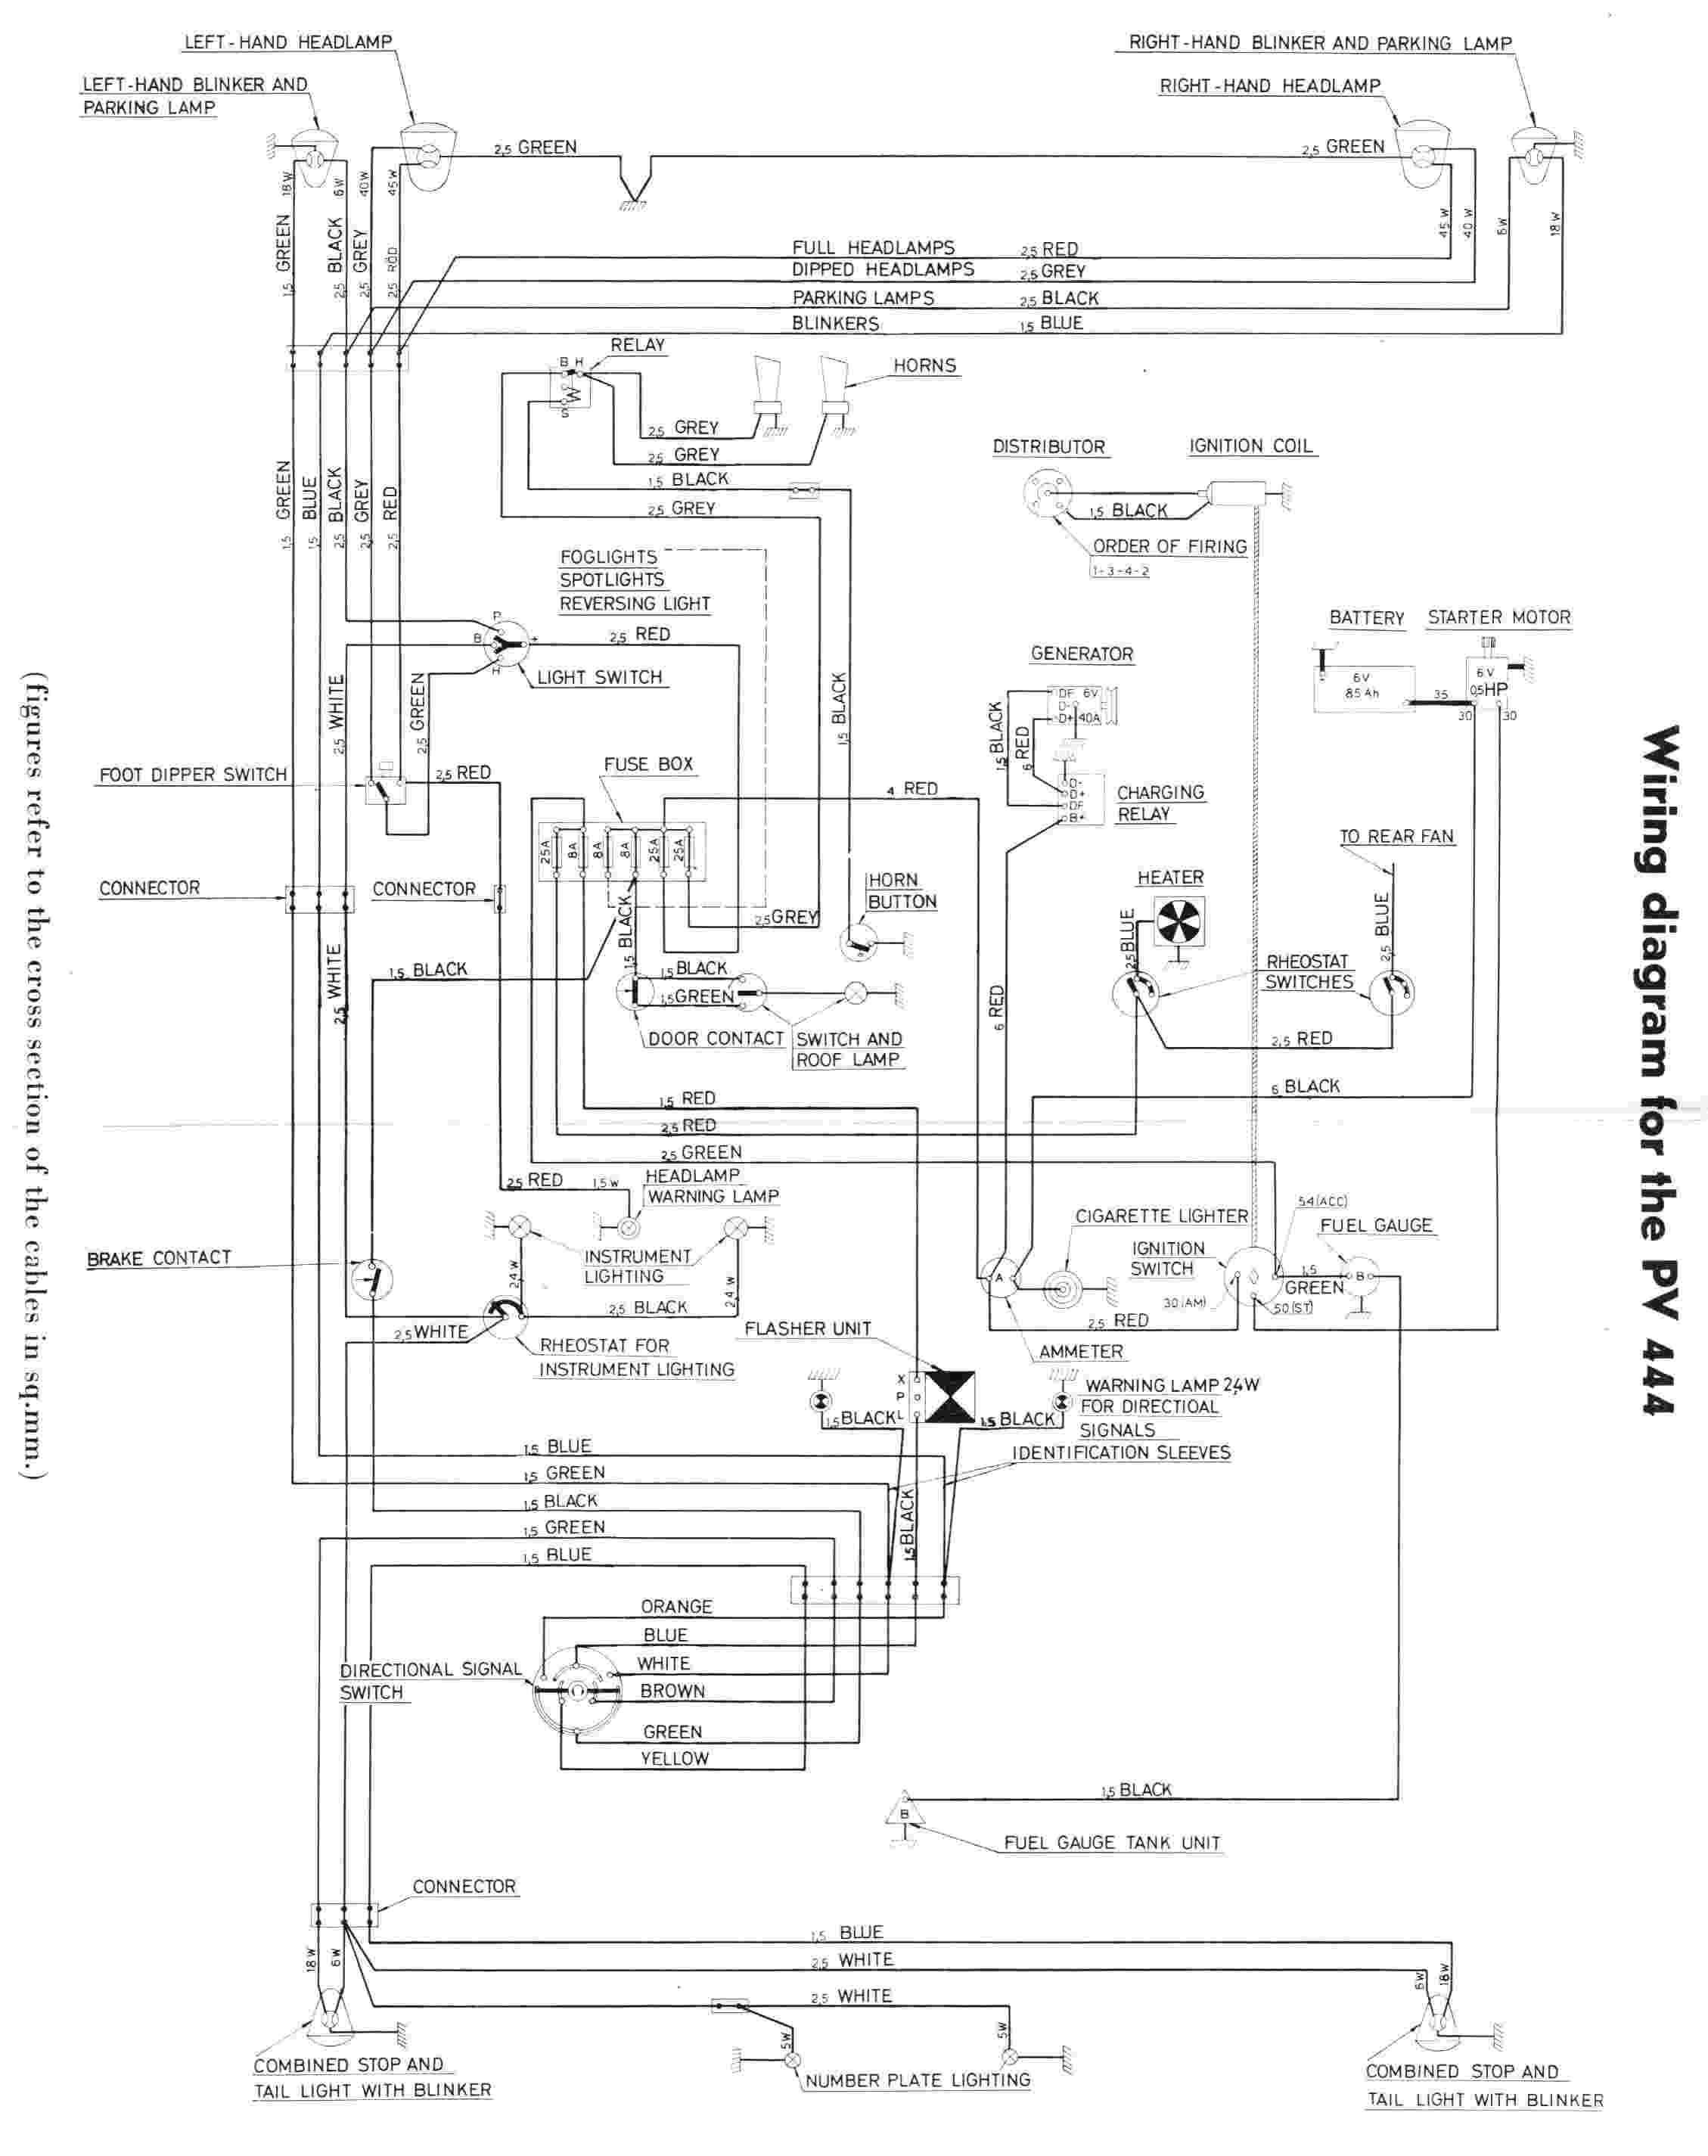 Volvo pv544 wiring diagram wiring diagram volvo car manuals wiring diagrams pdf fault codes rh automotive manuals net volvo fuel pump wiring diagram volvo penta wiring diagram asfbconference2016 Image collections